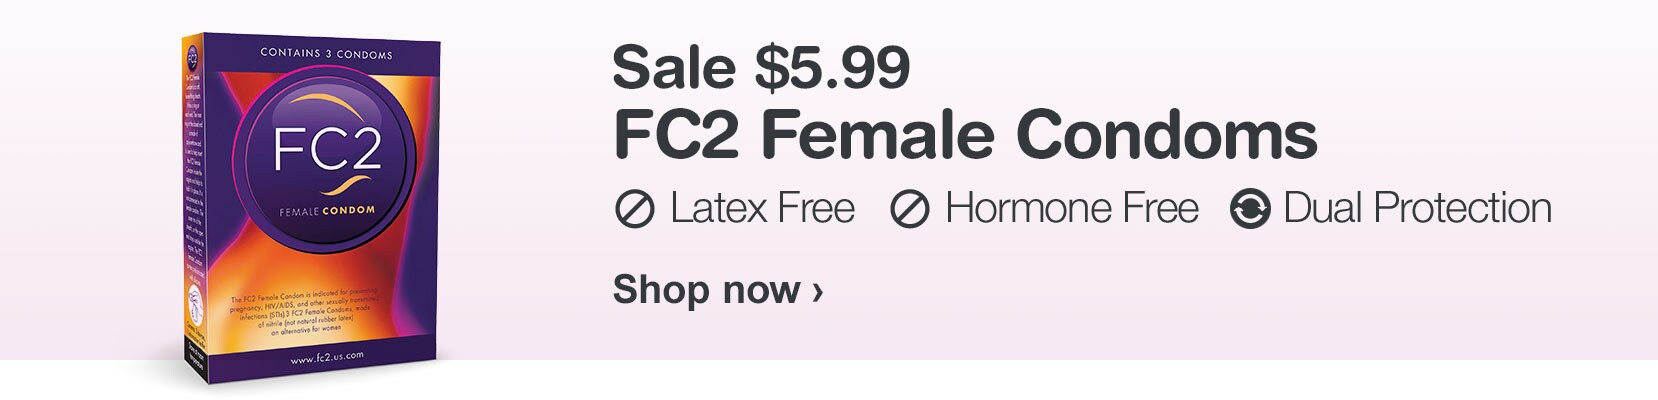 Sale $5.99 FC2 Female Condoms. Latex Free, Hormone Free, Dual Protection. Shop now.